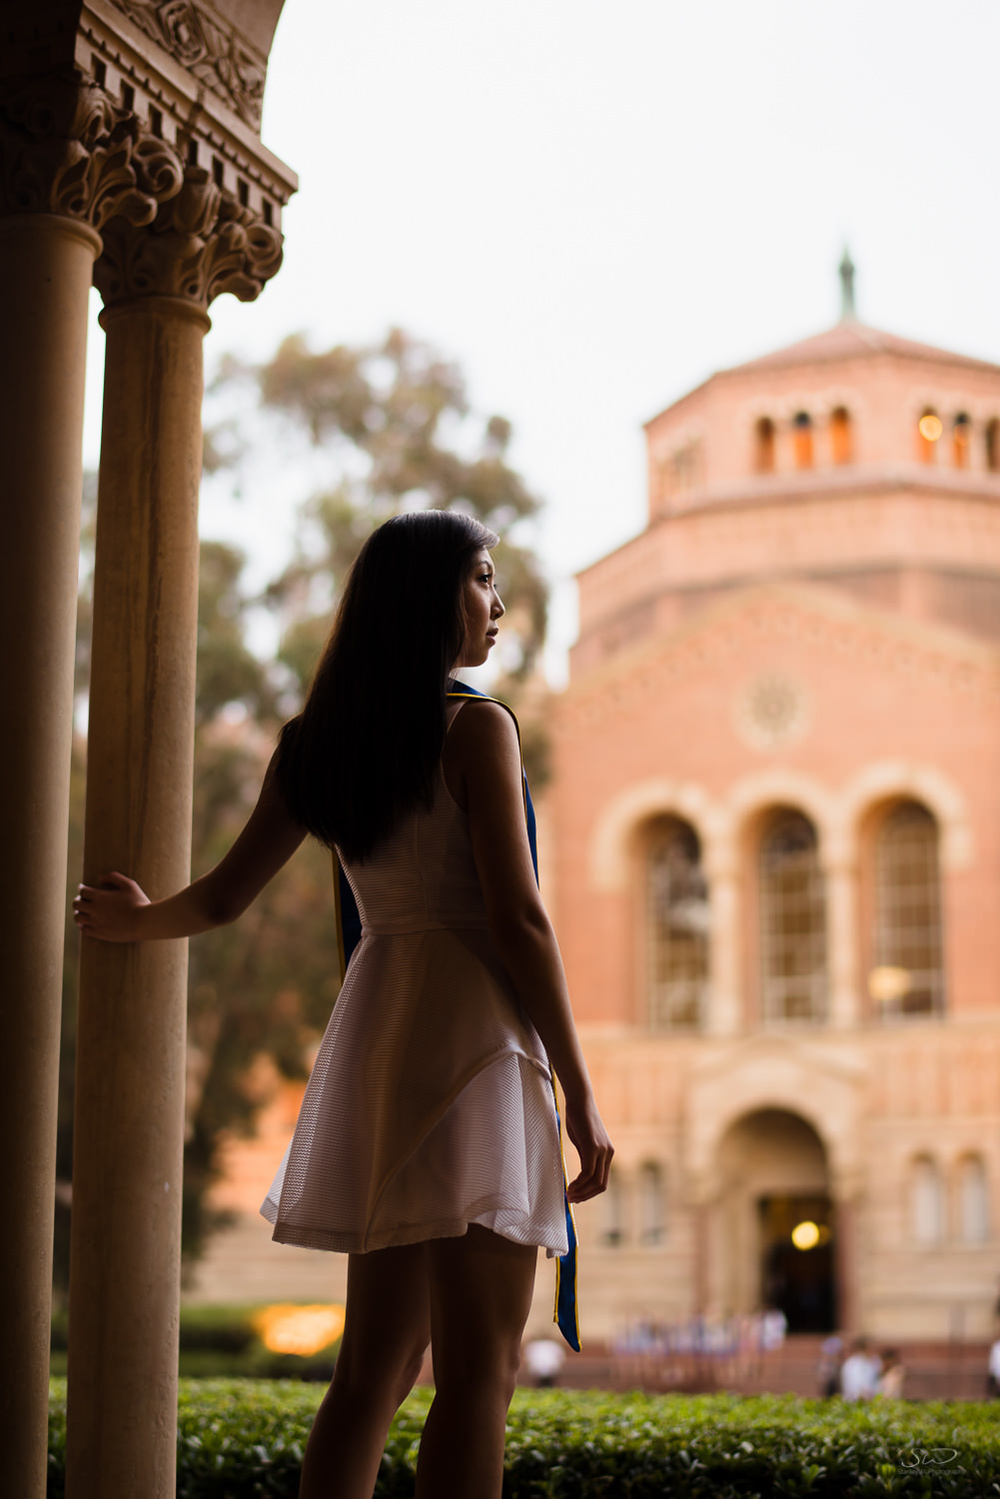 ucla-uc-berkeley-couple-grad-27.jpg